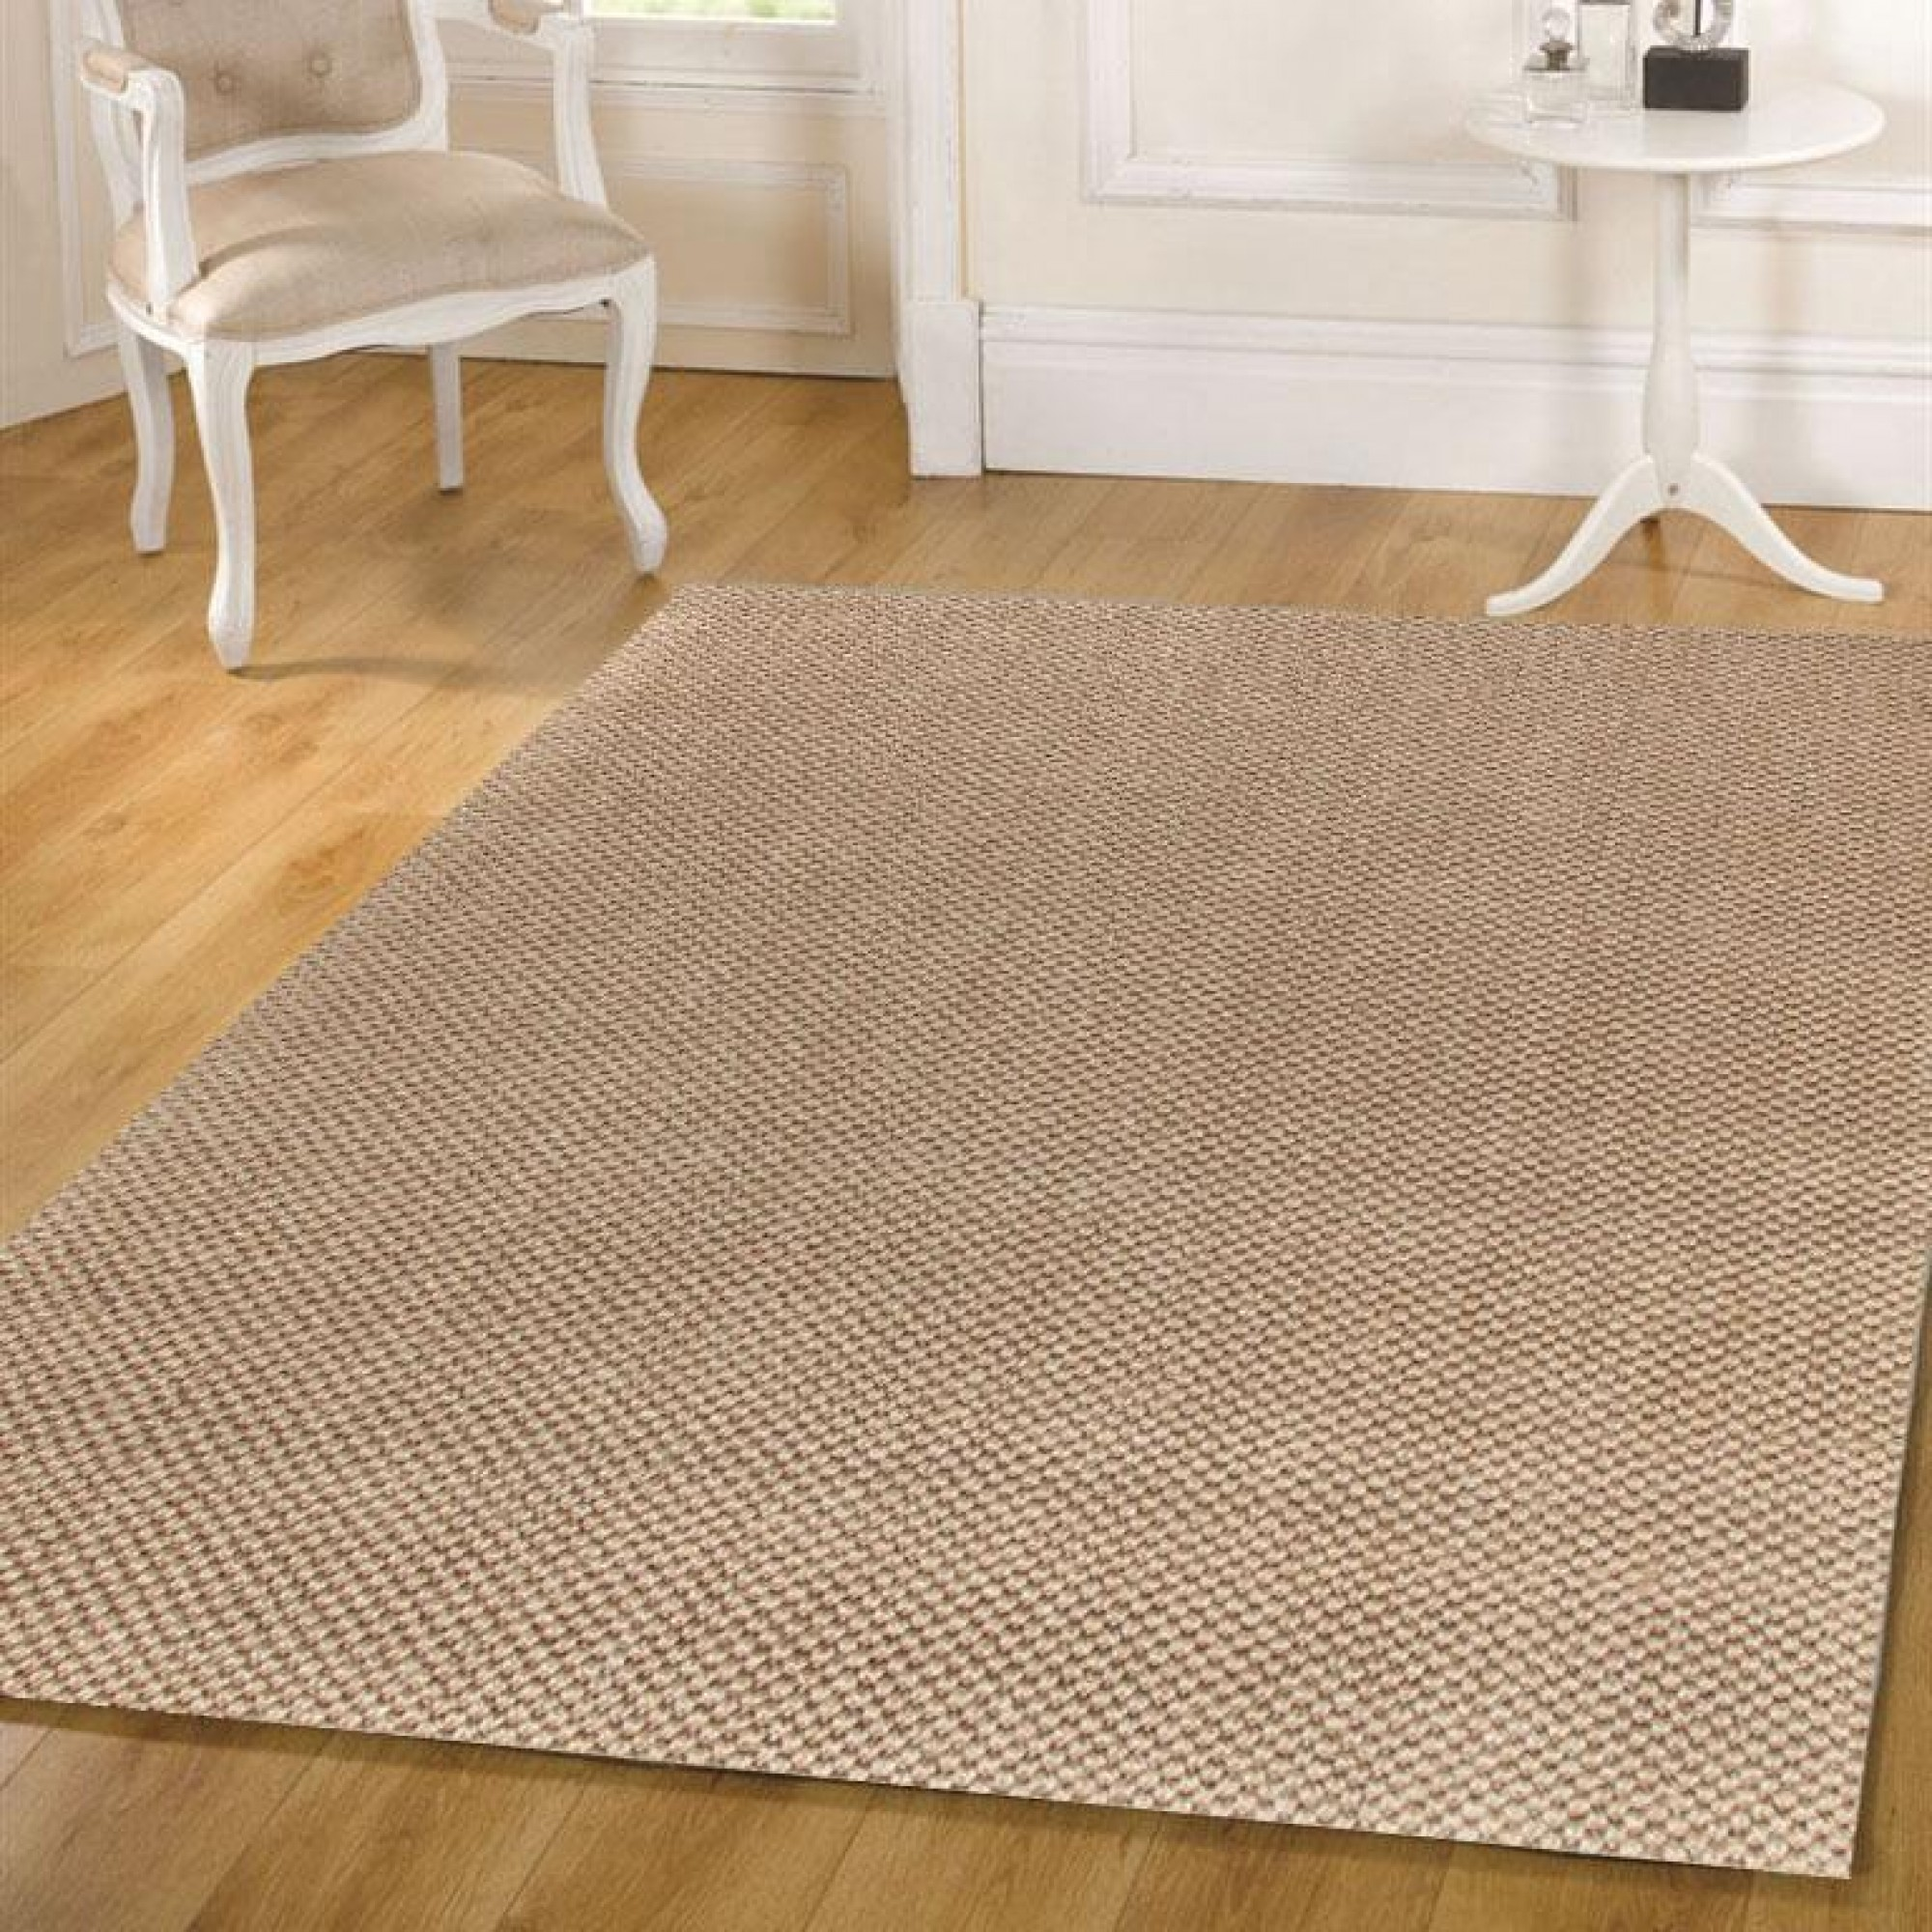 Sisal Rug | Cream Sisal Rug | Synthetic Sisal Rug